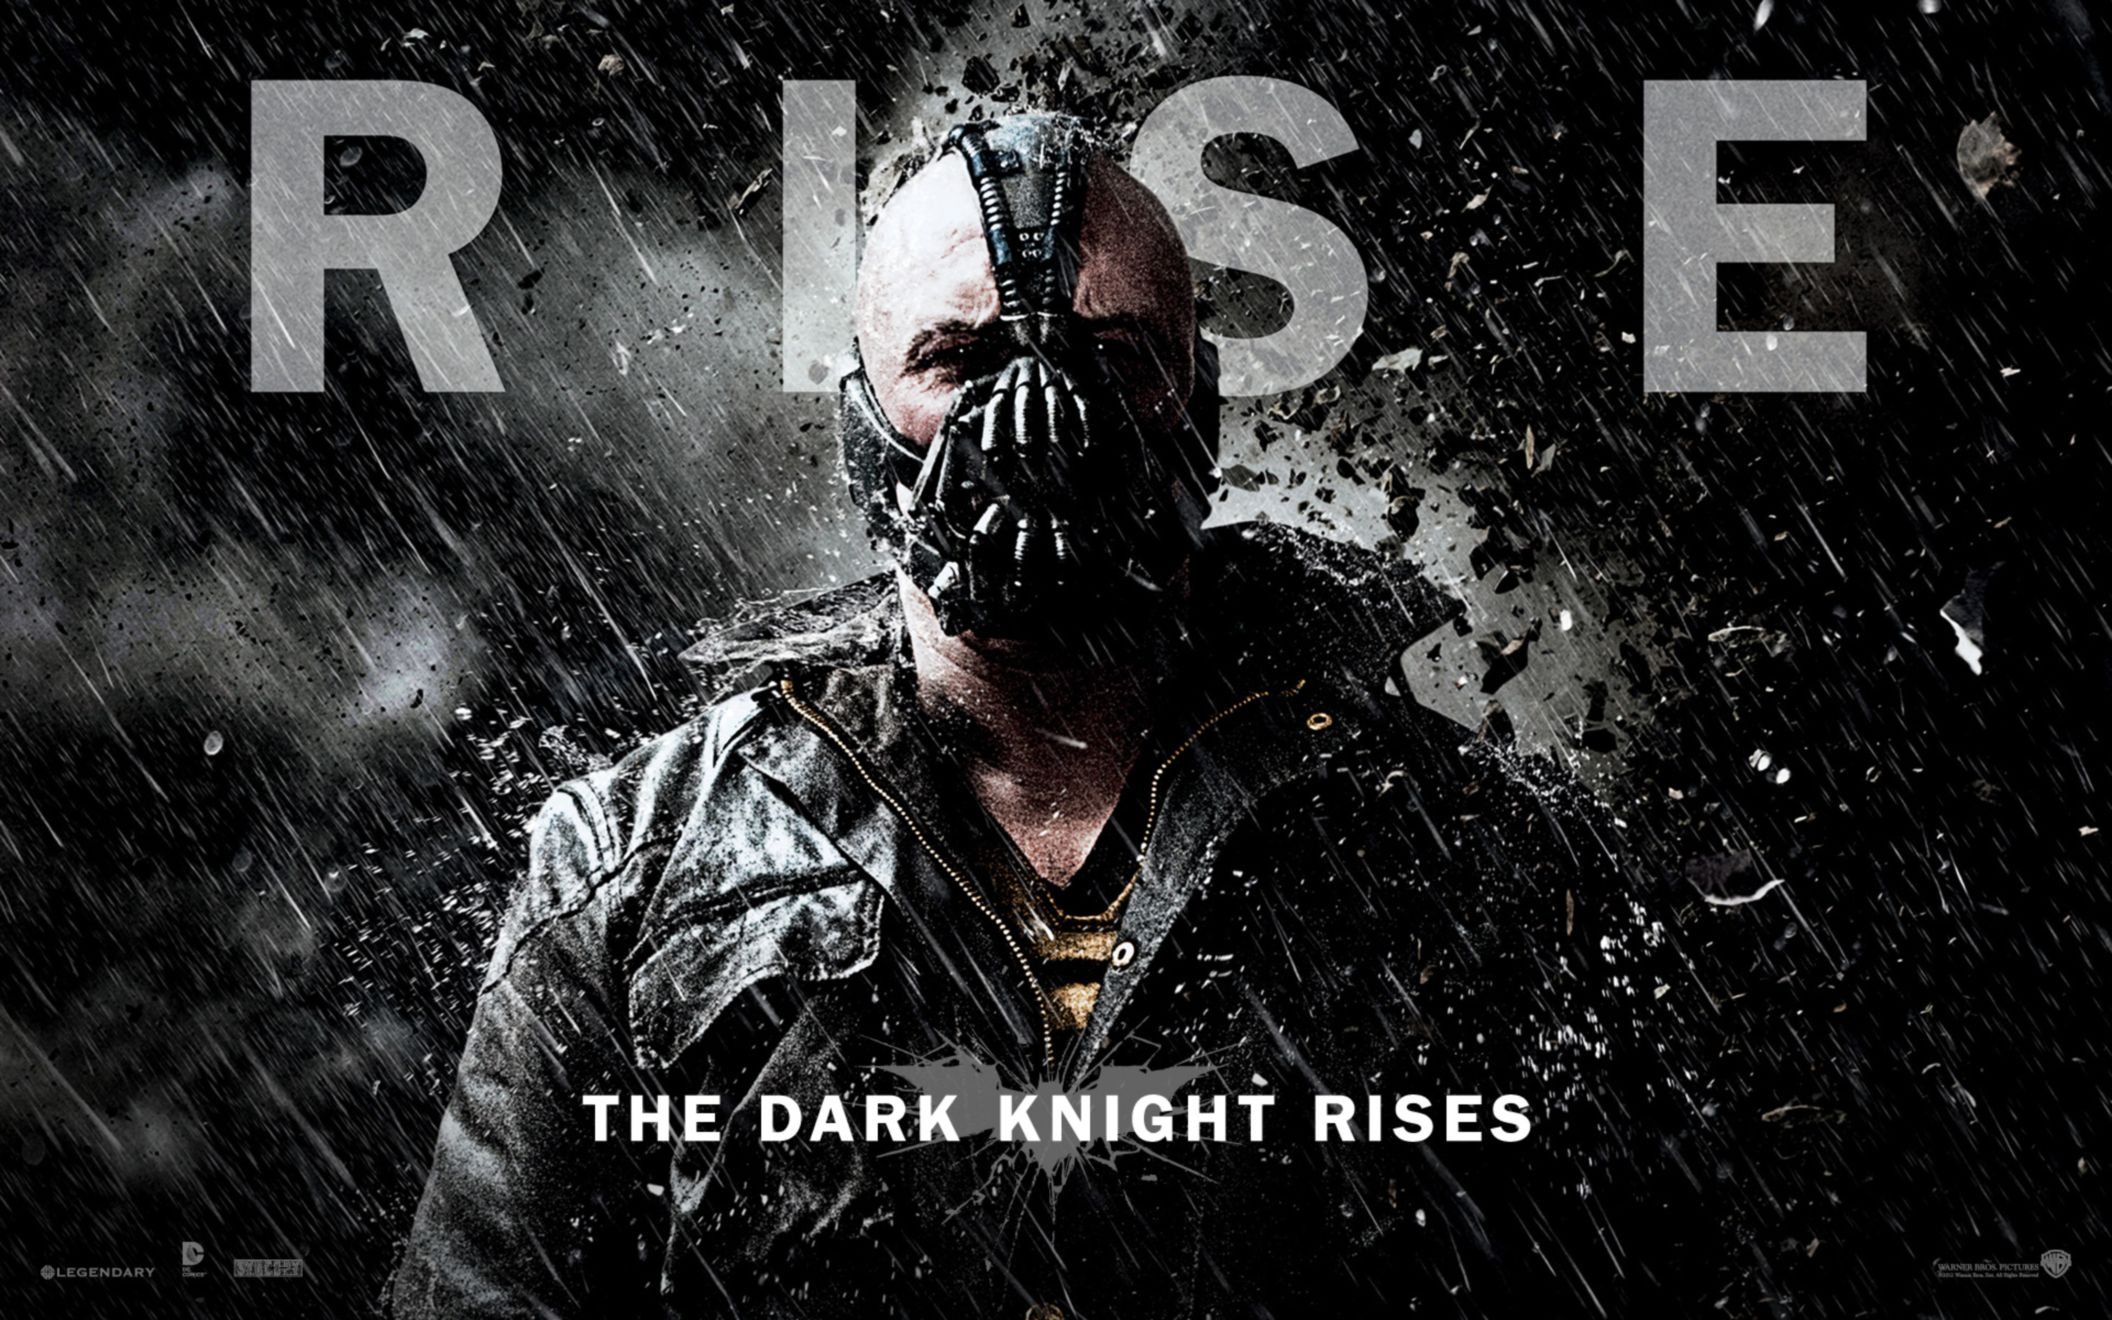 Bane dark knight rises wide wallpaper desktop hd wallpaper bane dark knight rises wide wallpaper voltagebd Image collections